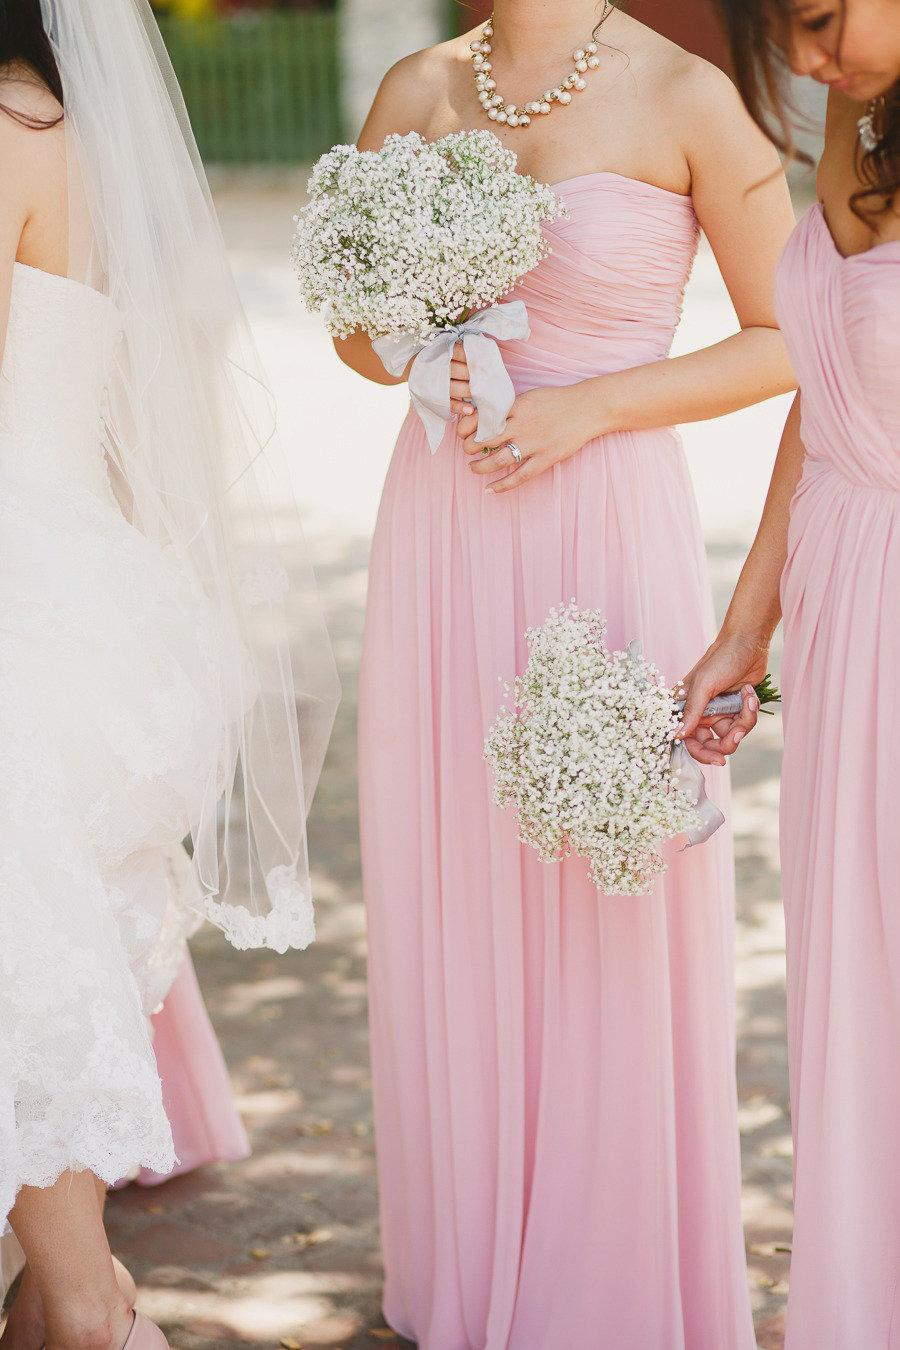 23 pretty spring wedding flowers and ideas spring wedding flowers mightylinksfo